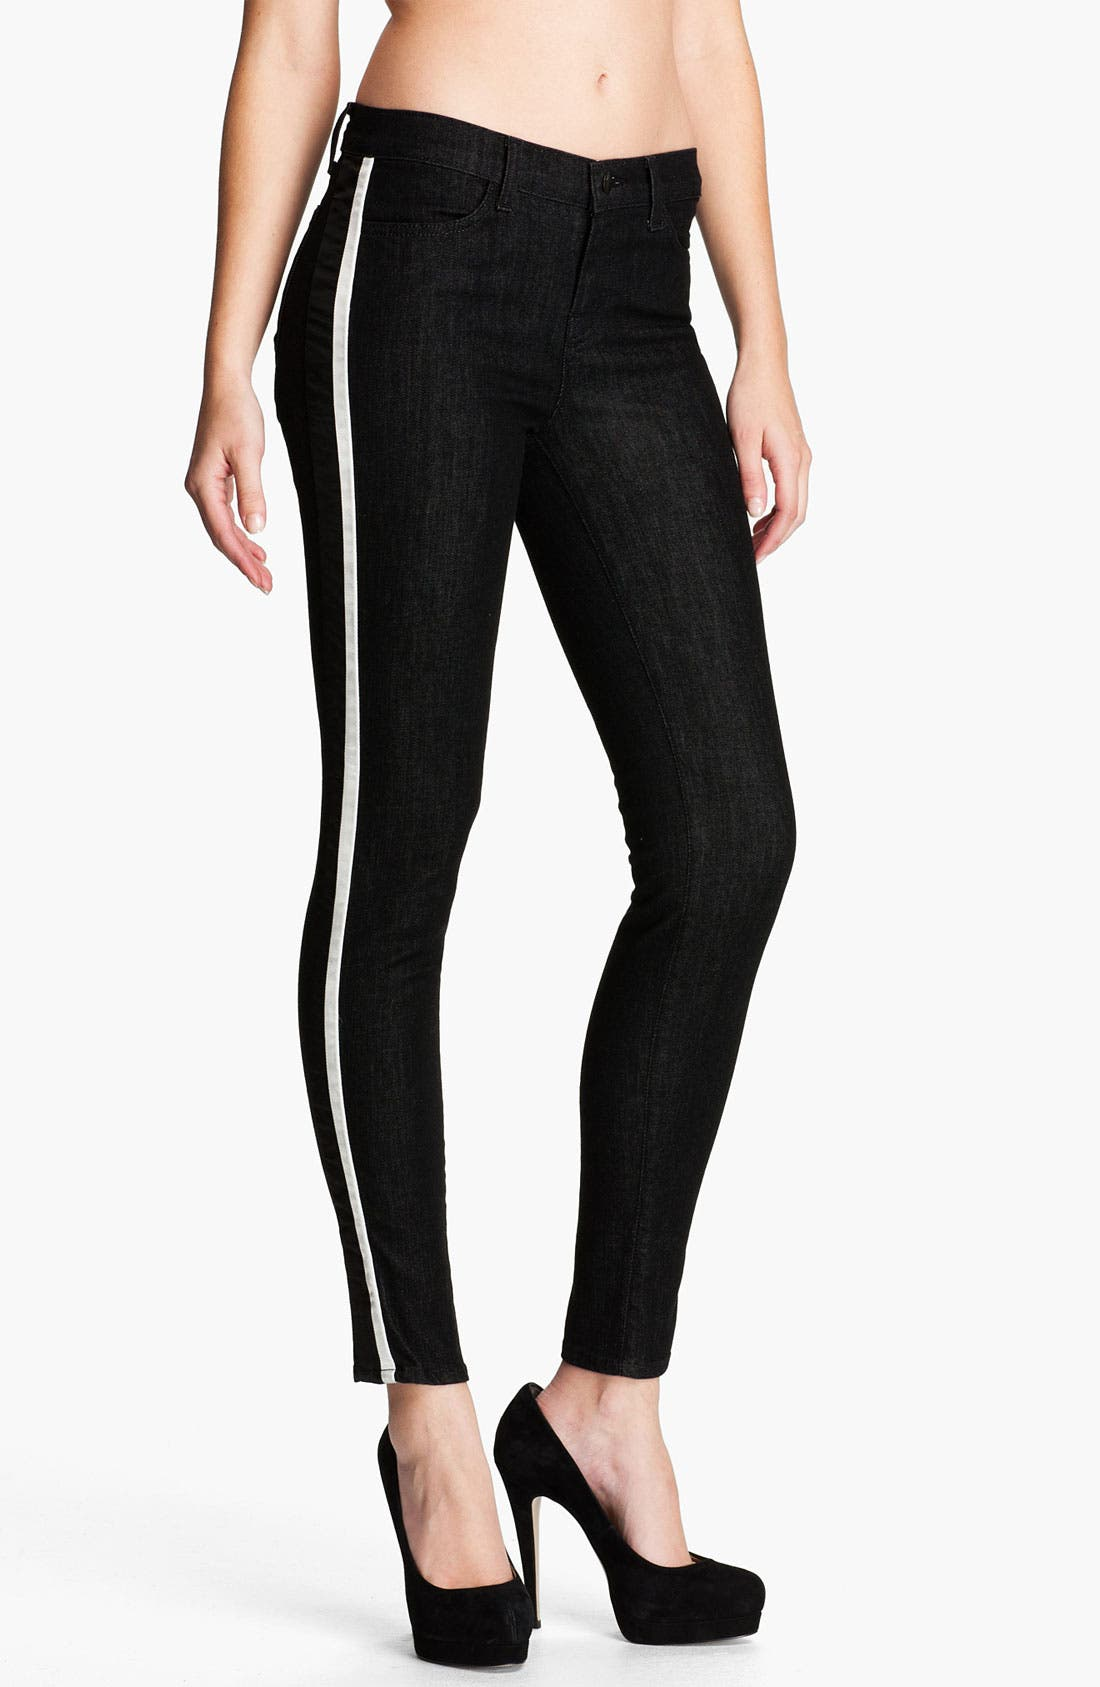 Alternate Image 1 Selected - J Brand 'Rowan' Stripe Skinny Jeans (Tux)